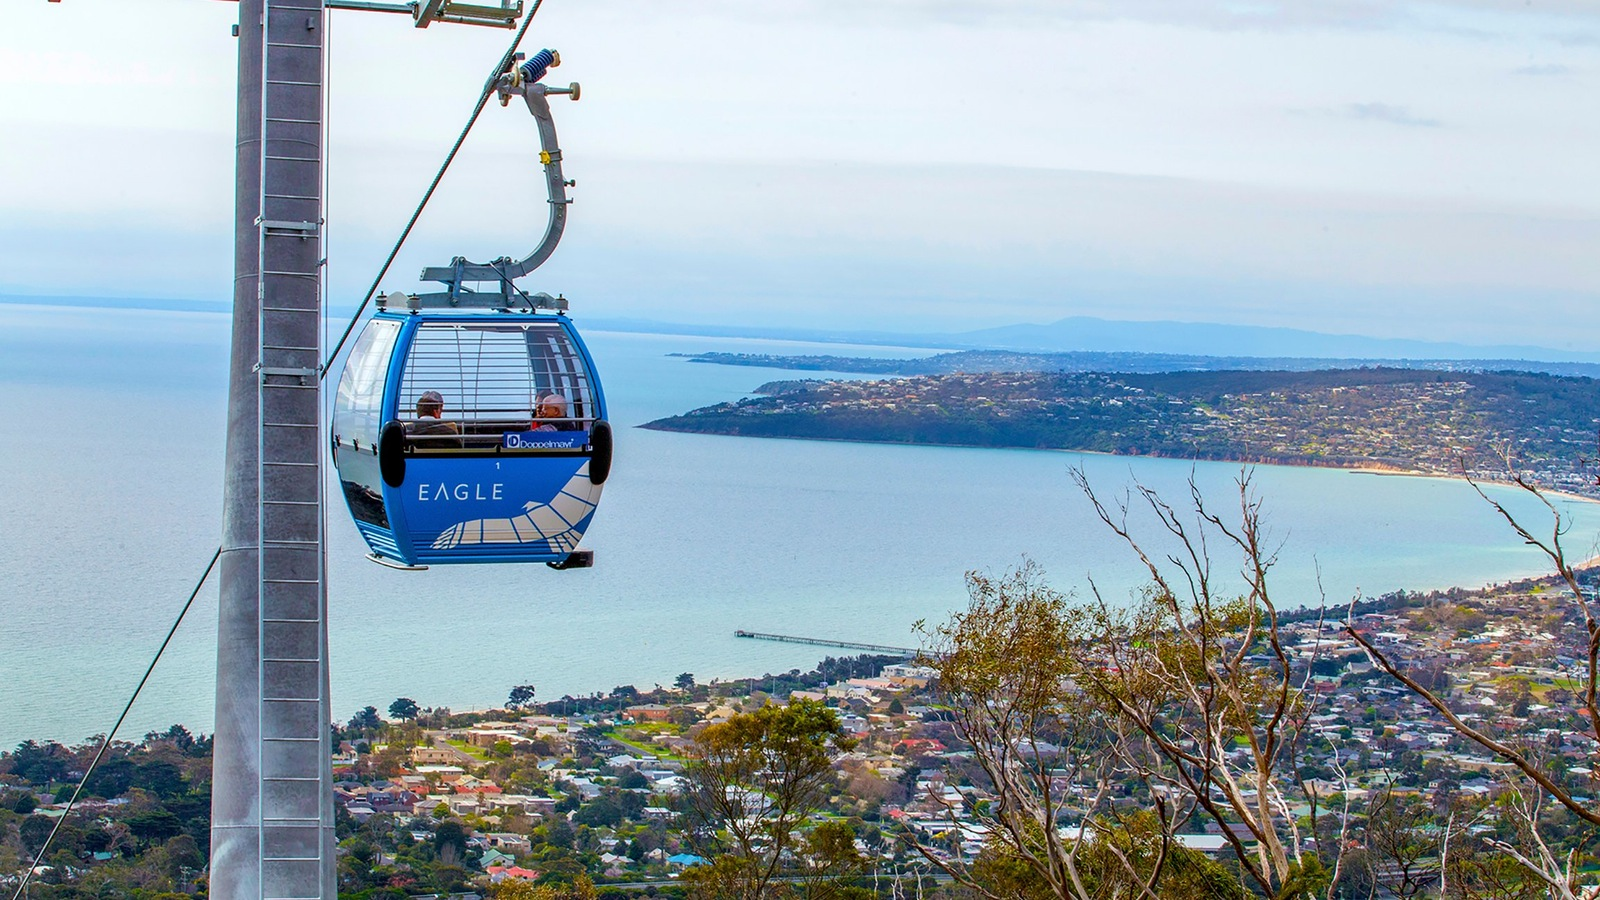 Gondola journey at Arthurs Seat